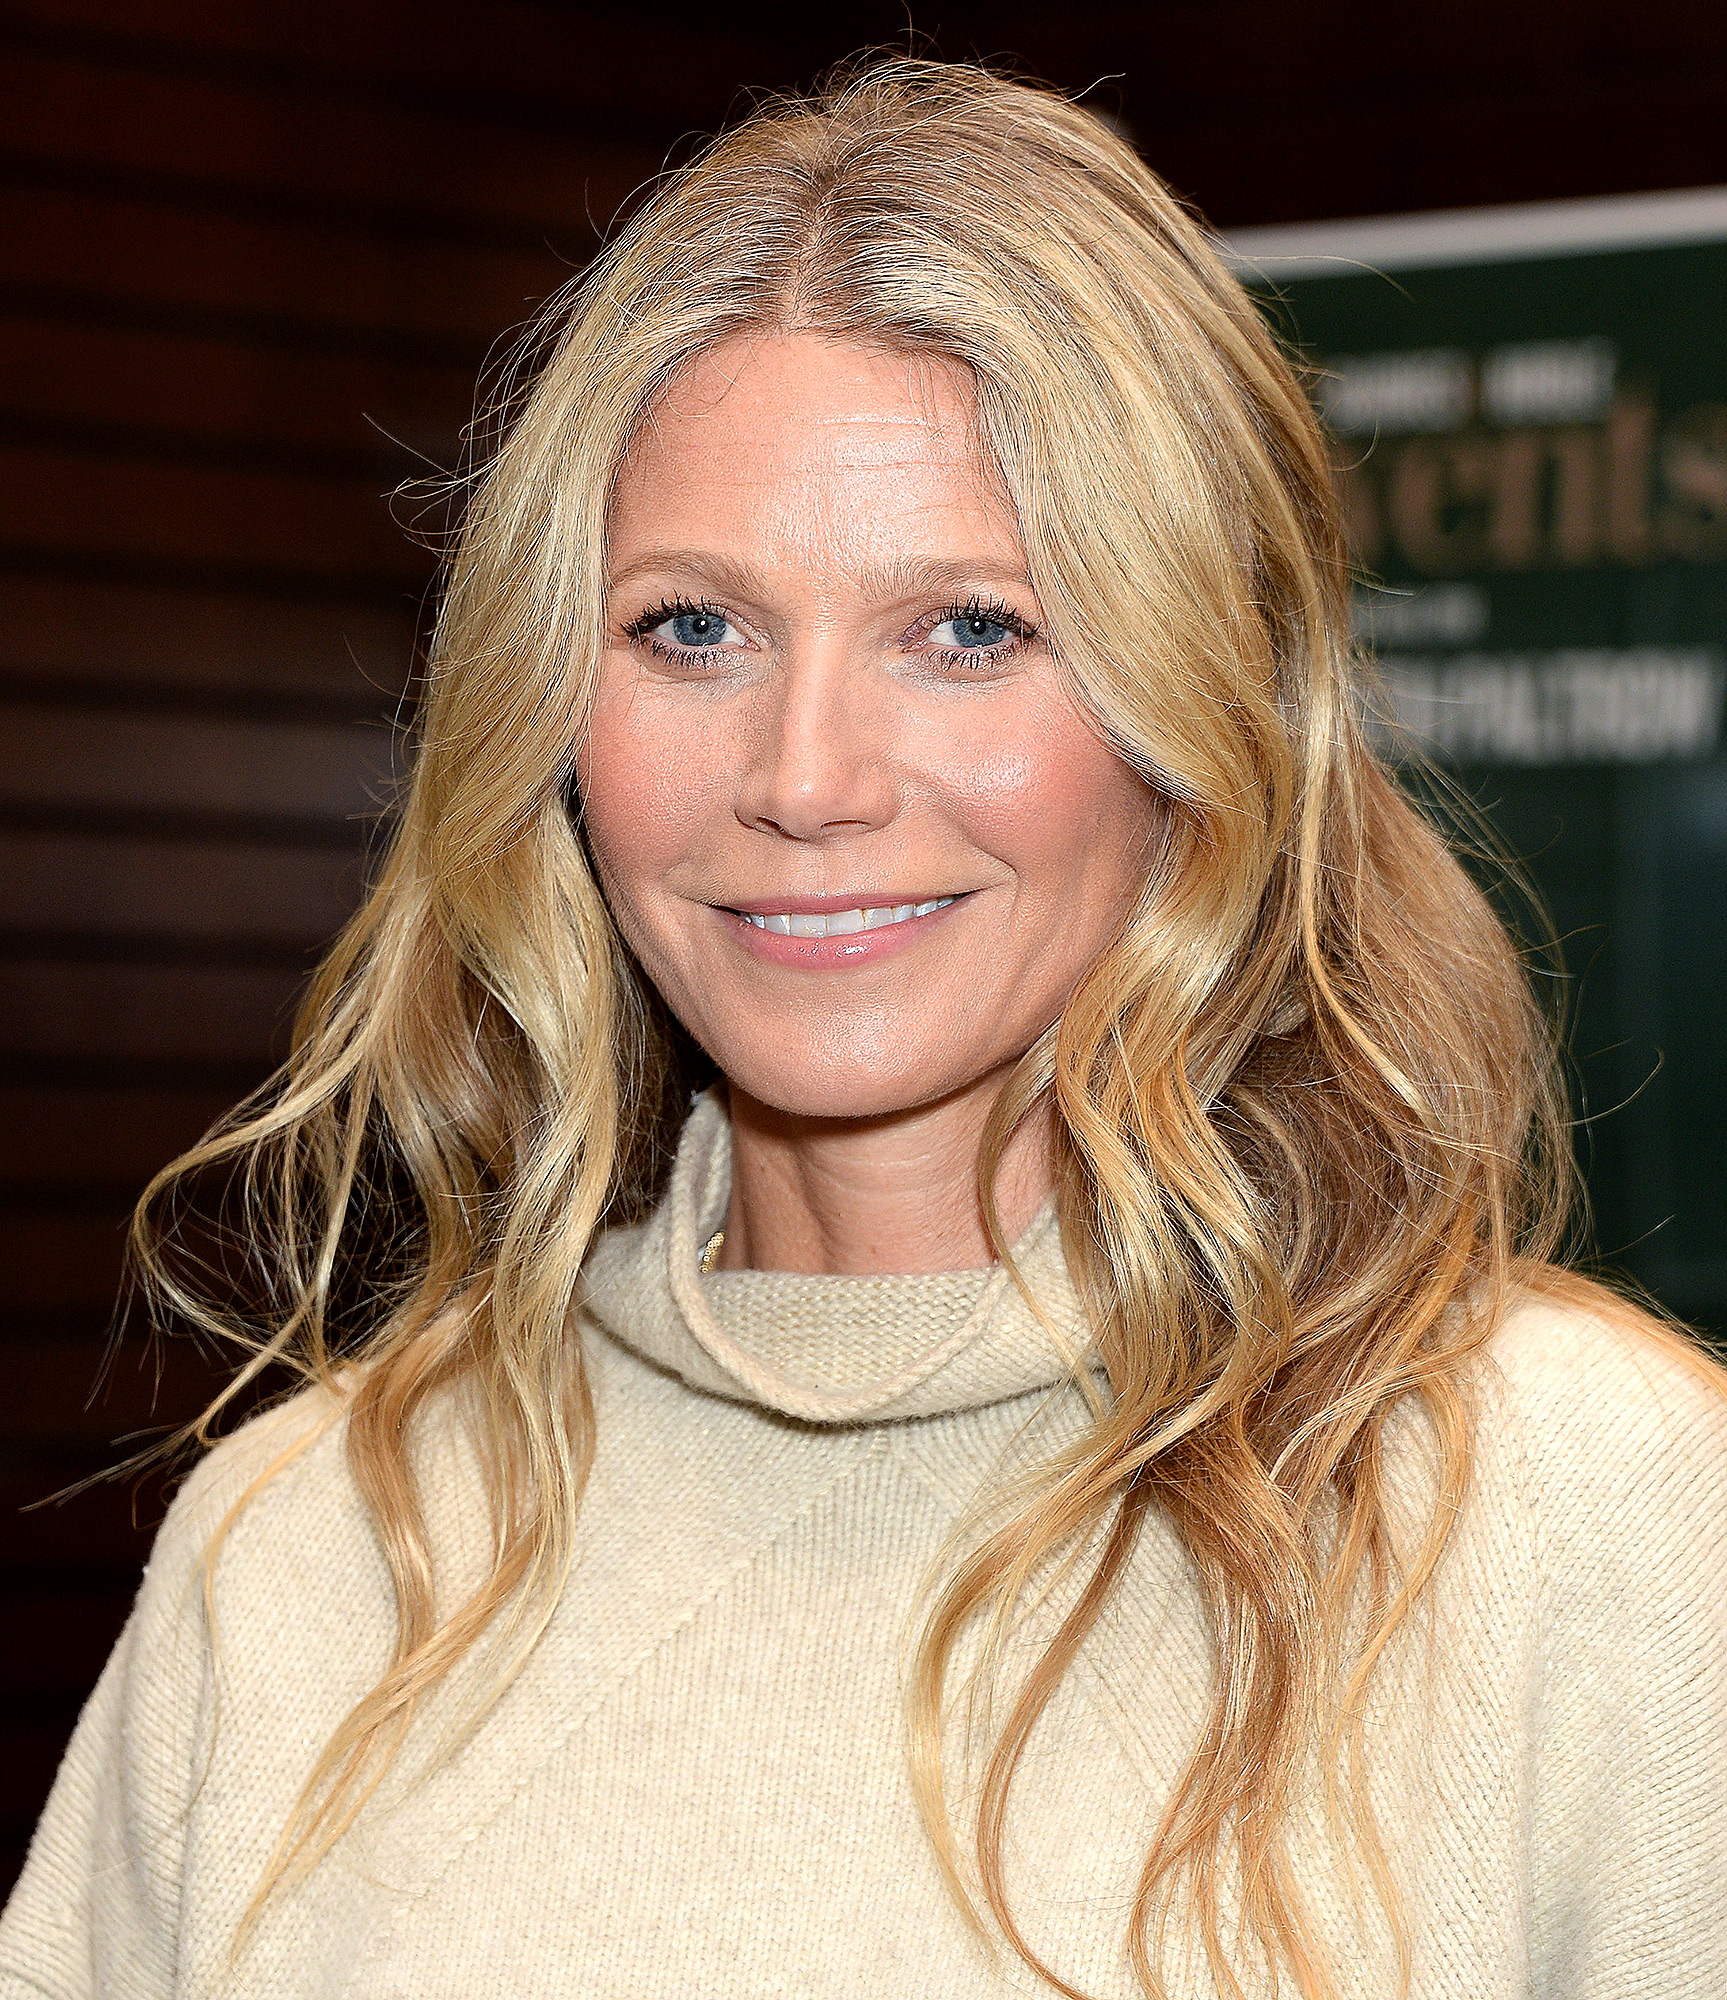 Gwyneth Paltrow 'The Clean Plate' Book Signing, Los Angeles, USA - 14 Jan 2019